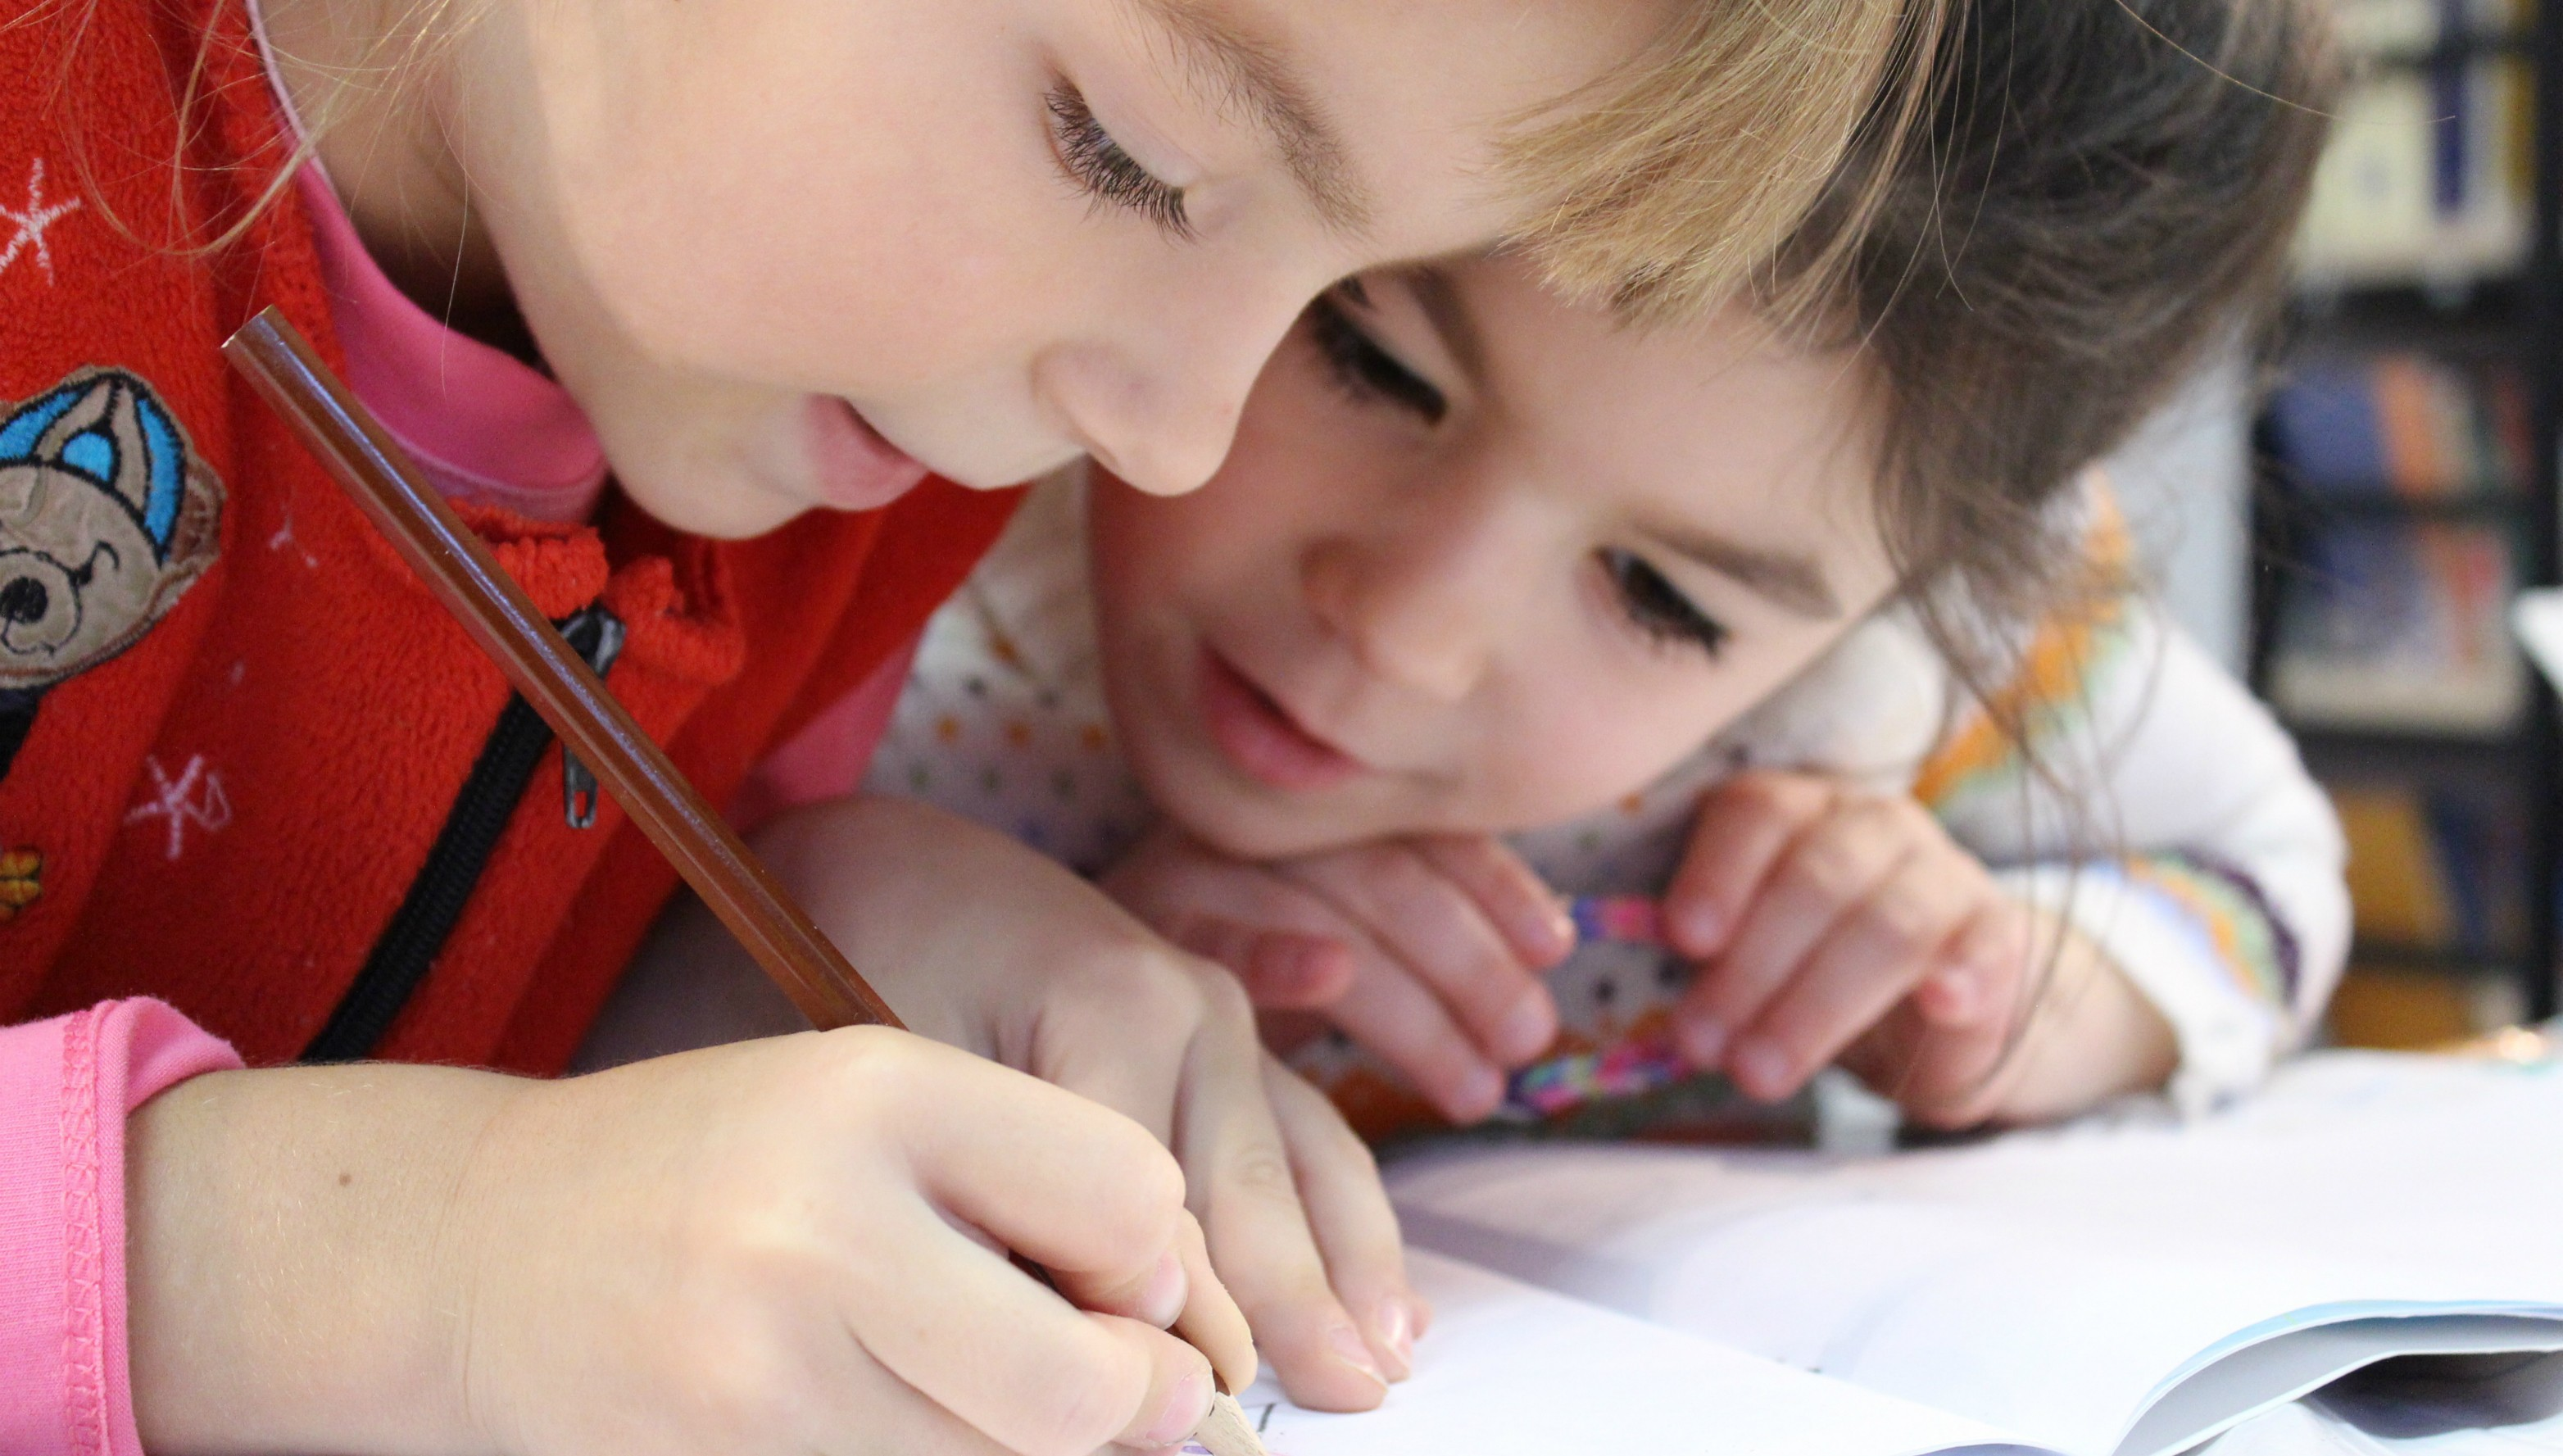 """<a href=""""https://www.yieb.org/community/schools""""                                     target="""""""">                                                                 <span class=""""slider_title"""">                                     School options for all types of learners                                </span>                                                                 </a>                                                                                                                                                                                       <span class=""""slider_description"""">Members of YIEB take full advantage of the many yeshivot and schooling options located in and around East Brunswick.</span>                                                                                     <a href=""""https://www.yieb.org/community/schools"""" class=""""slider_link""""                             target="""""""">                             Learn More                            </a>"""